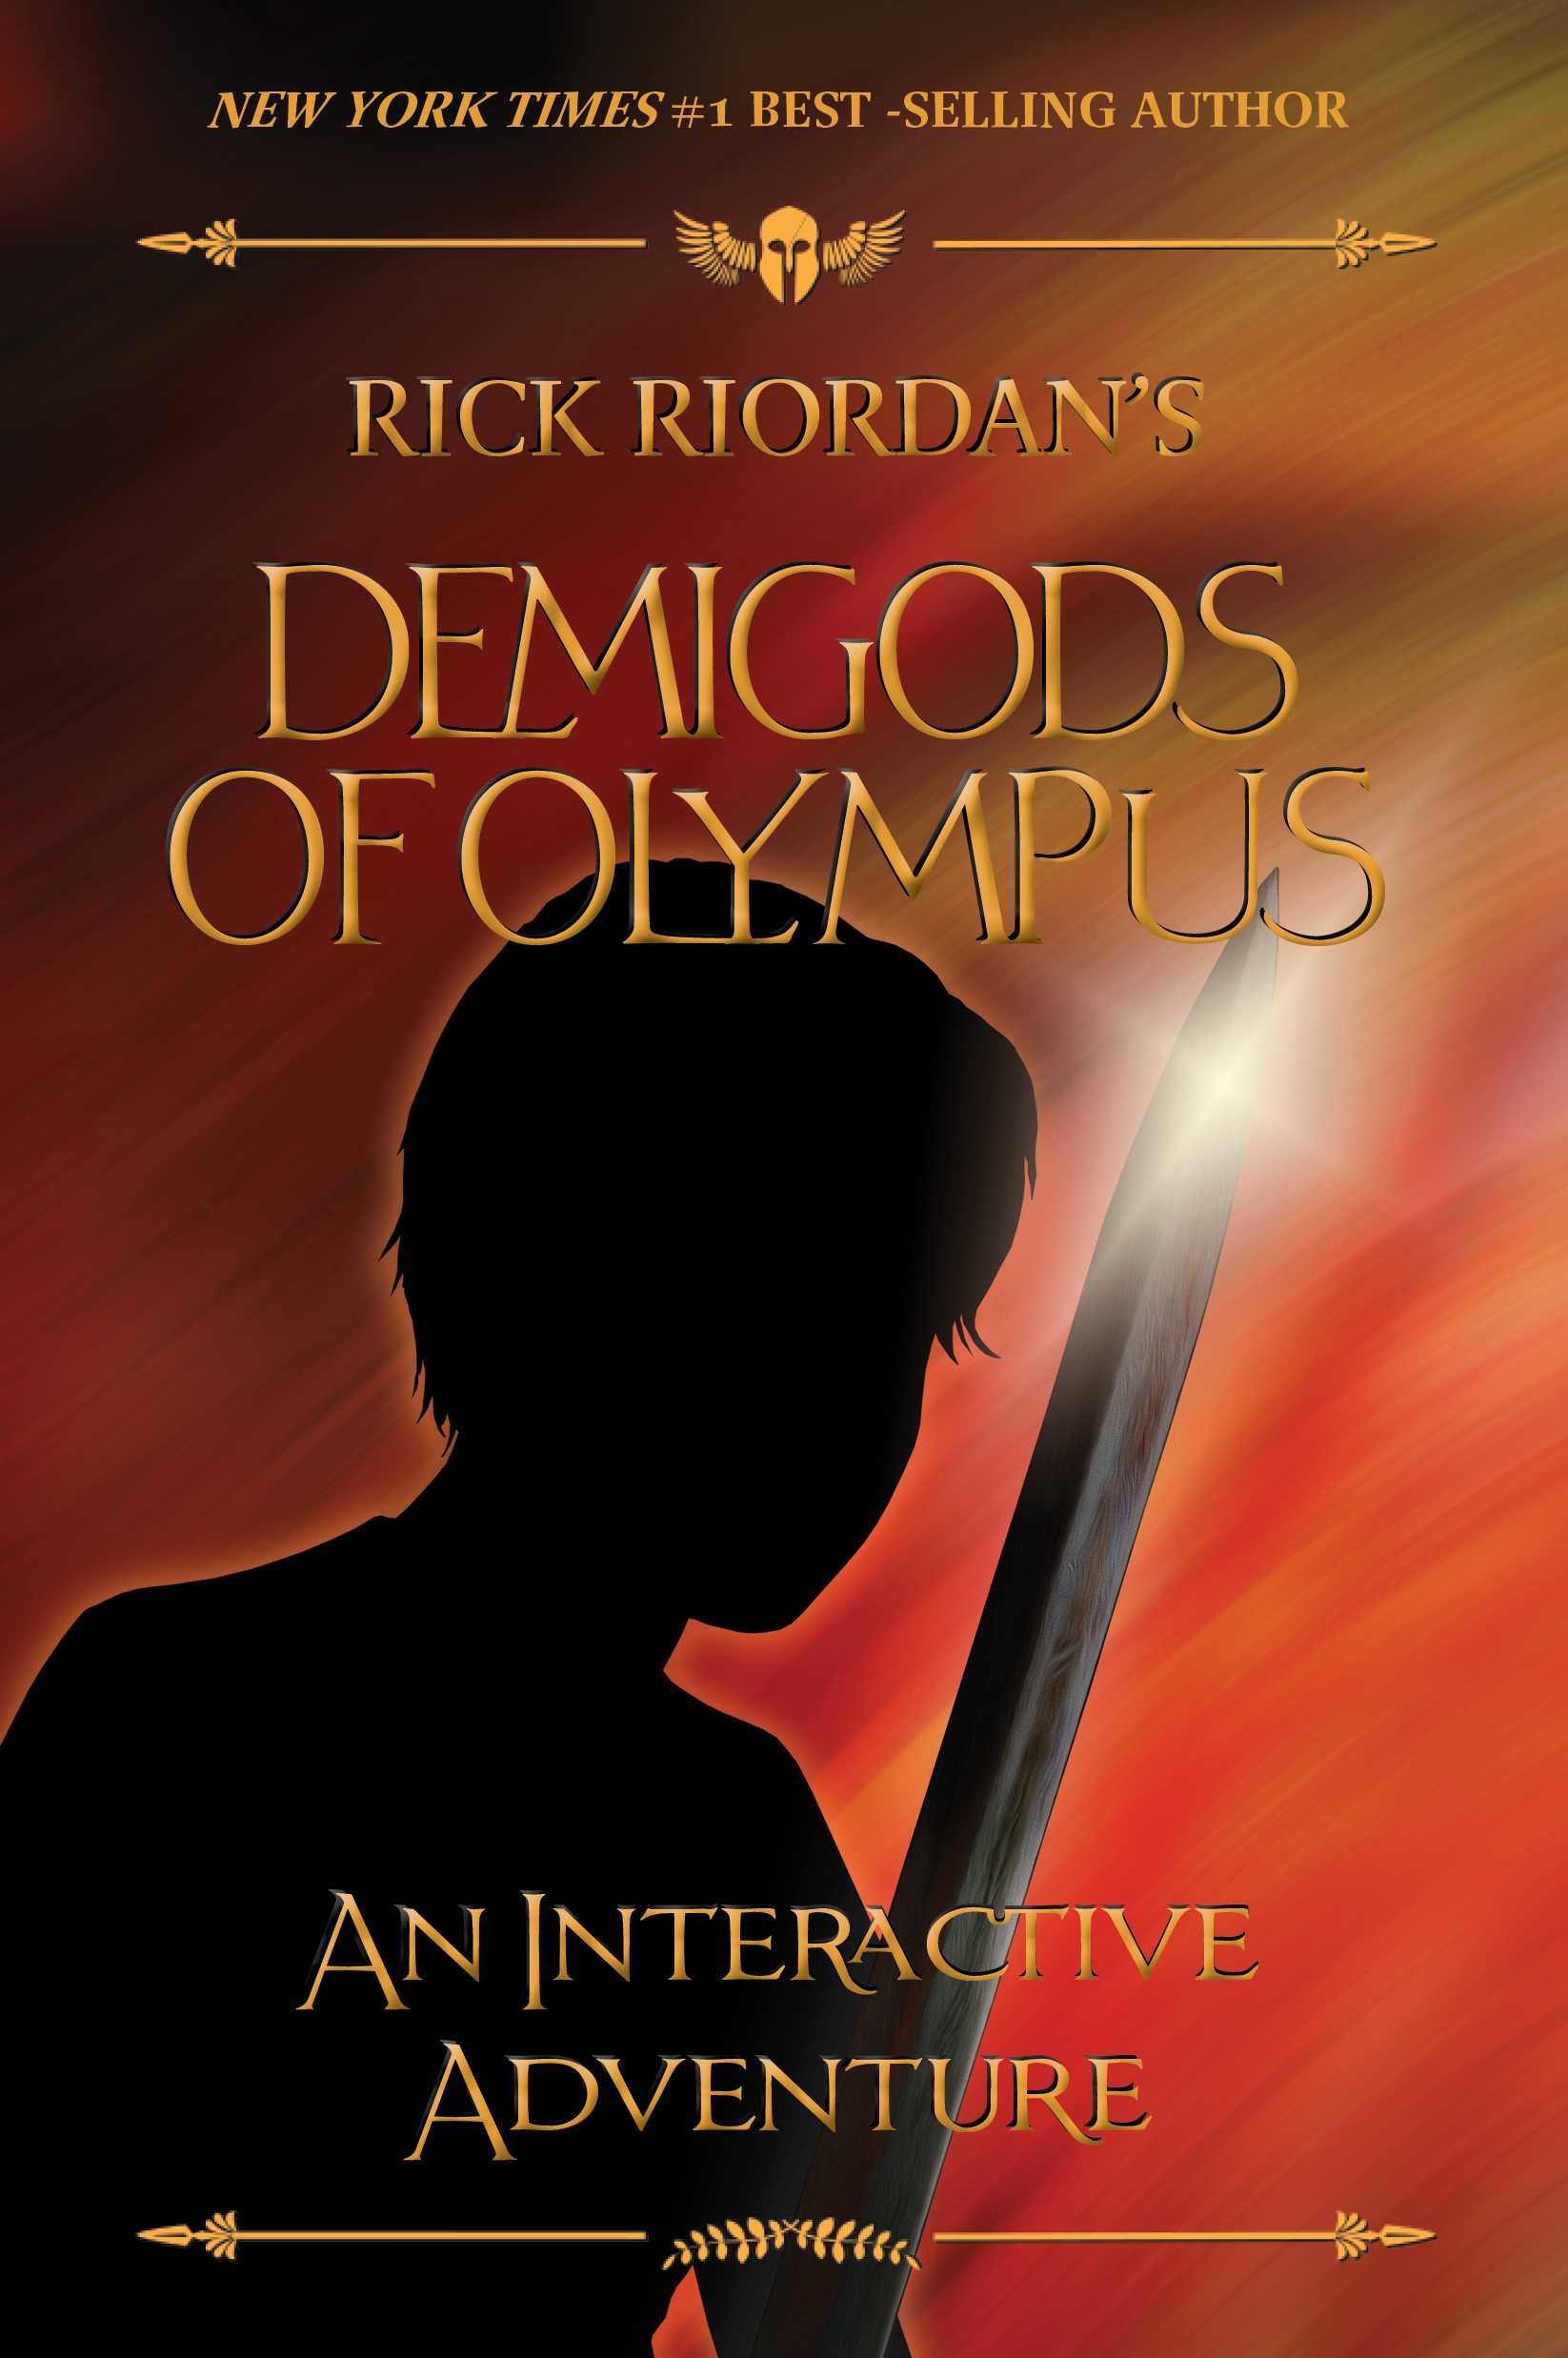 Percy Pack Perks: A Look At Rick Riordan's Upcoming Projects | Percy Pack